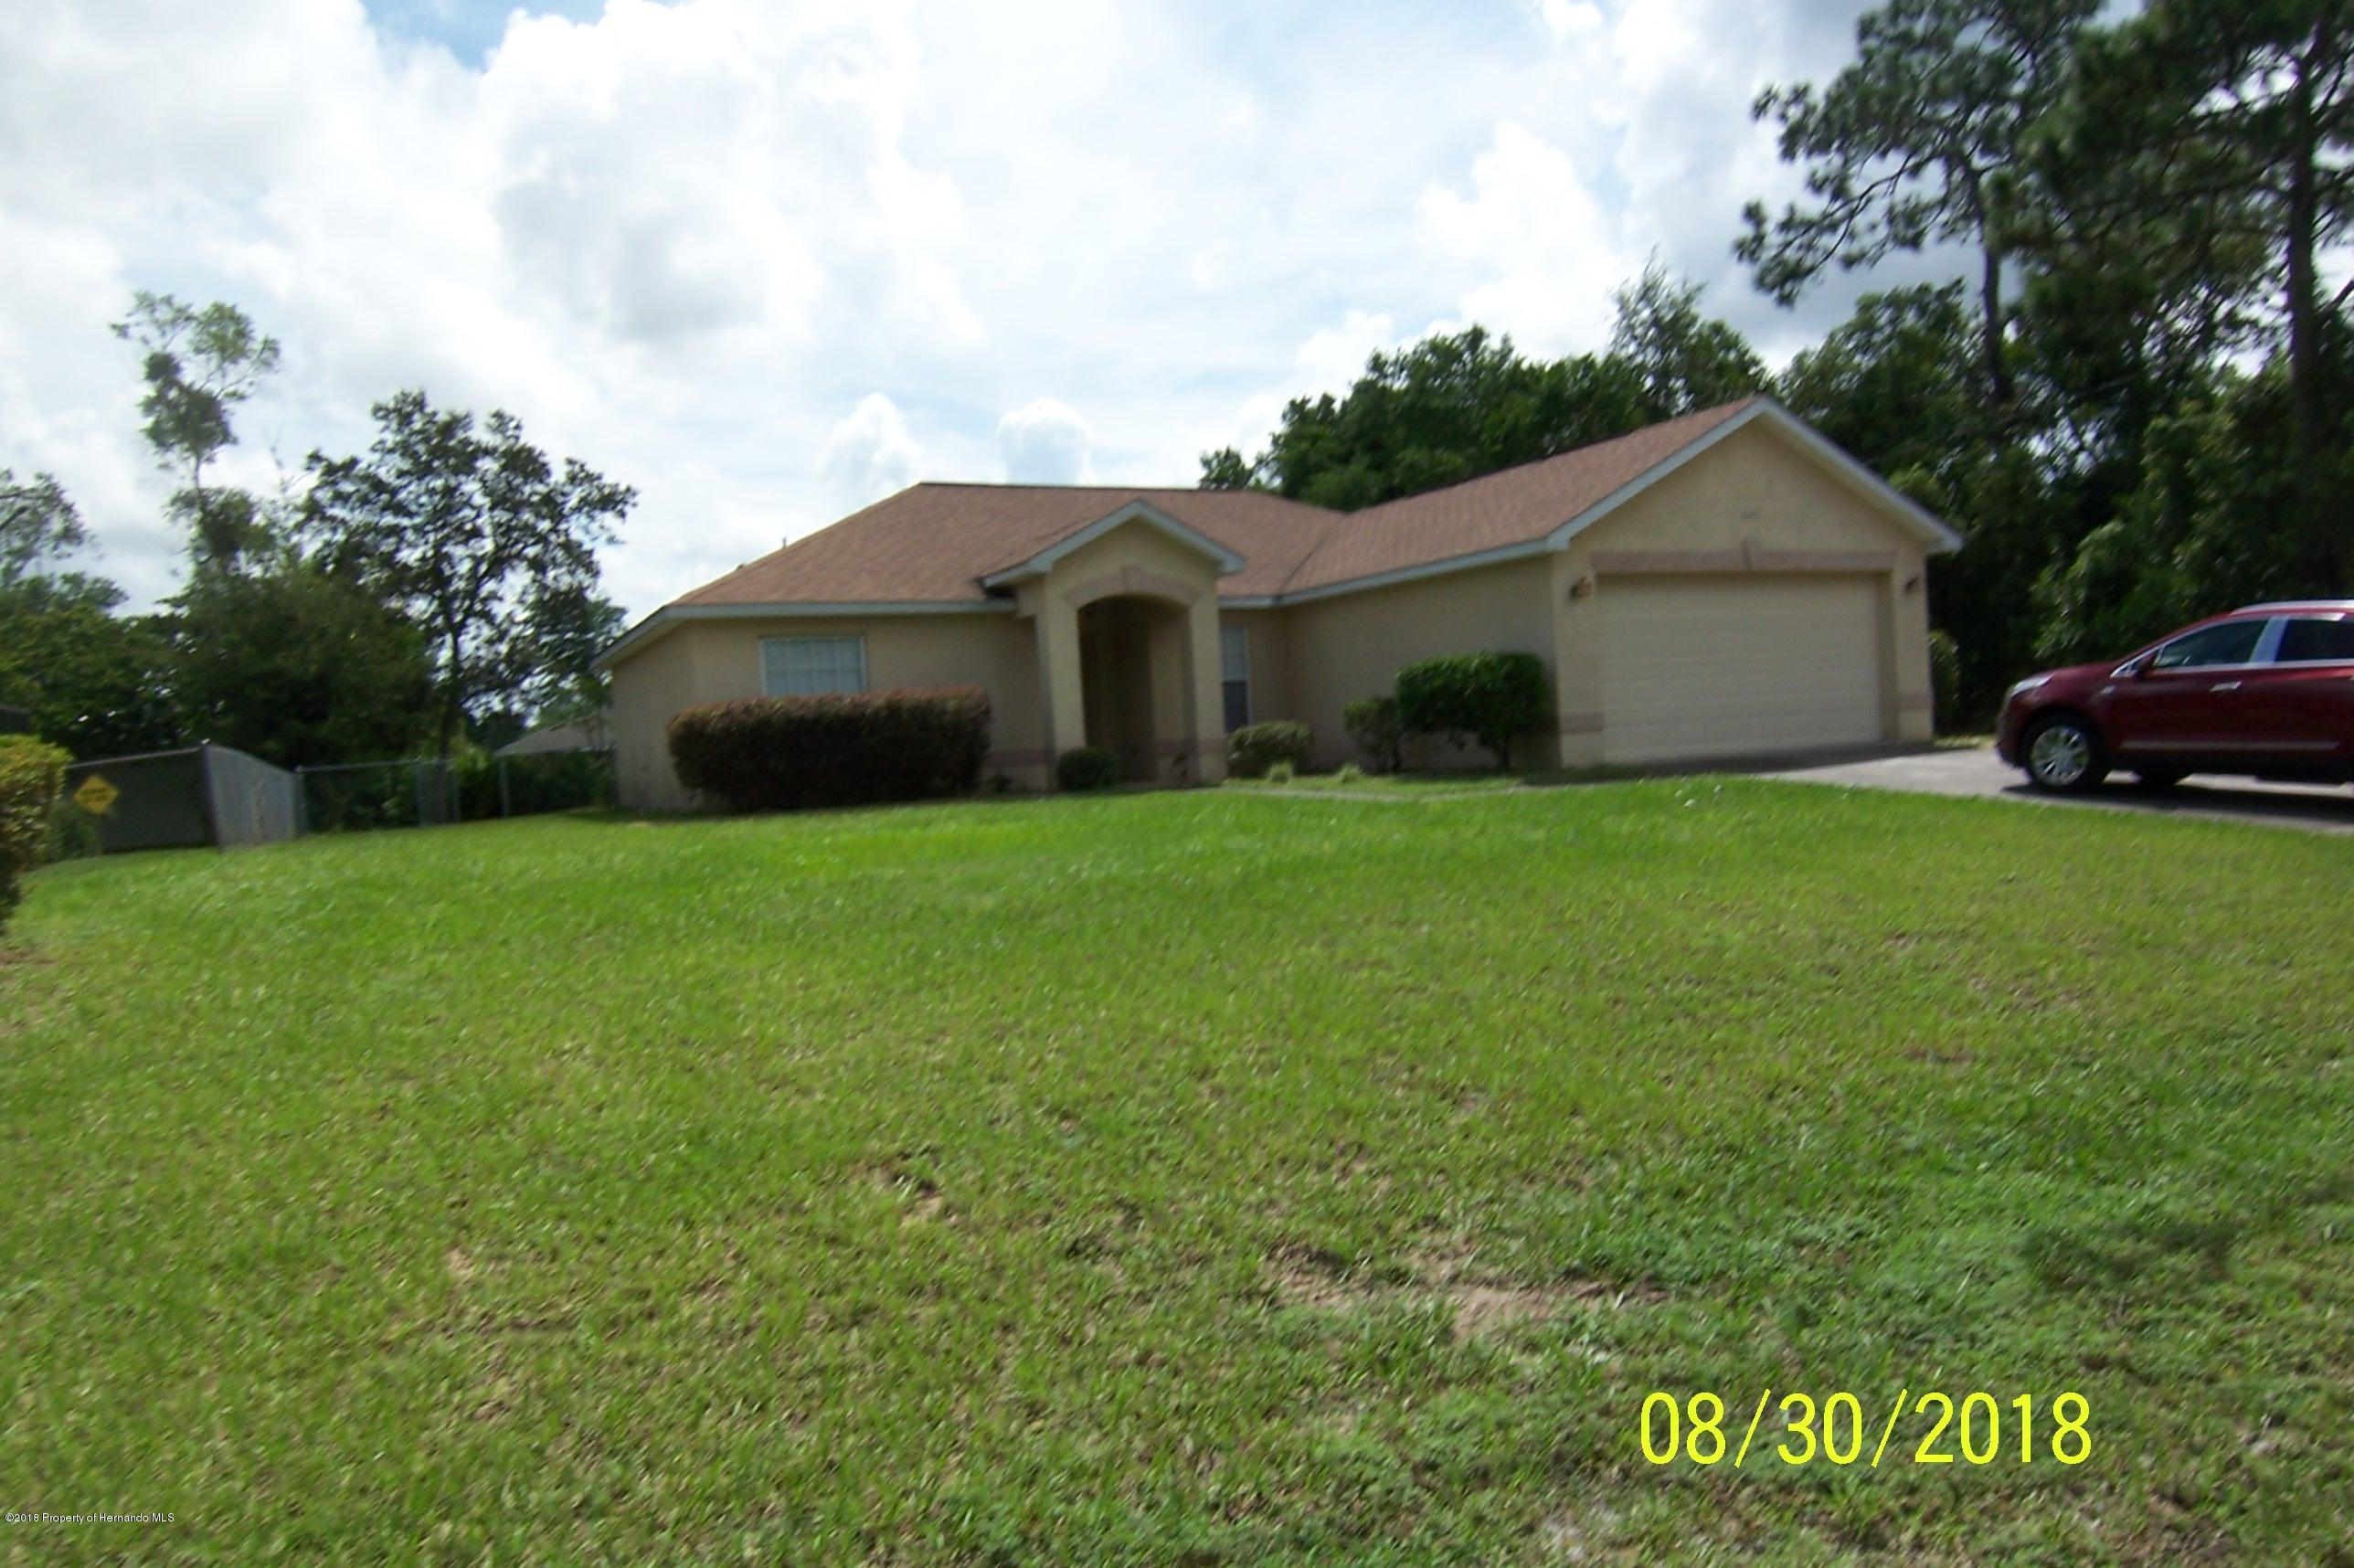 6042 Sunday, Spring Hill, Florida 34608, 3 Bedrooms Bedrooms, ,2 BathroomsBathrooms,Rental,For Sale,Sunday,2200606